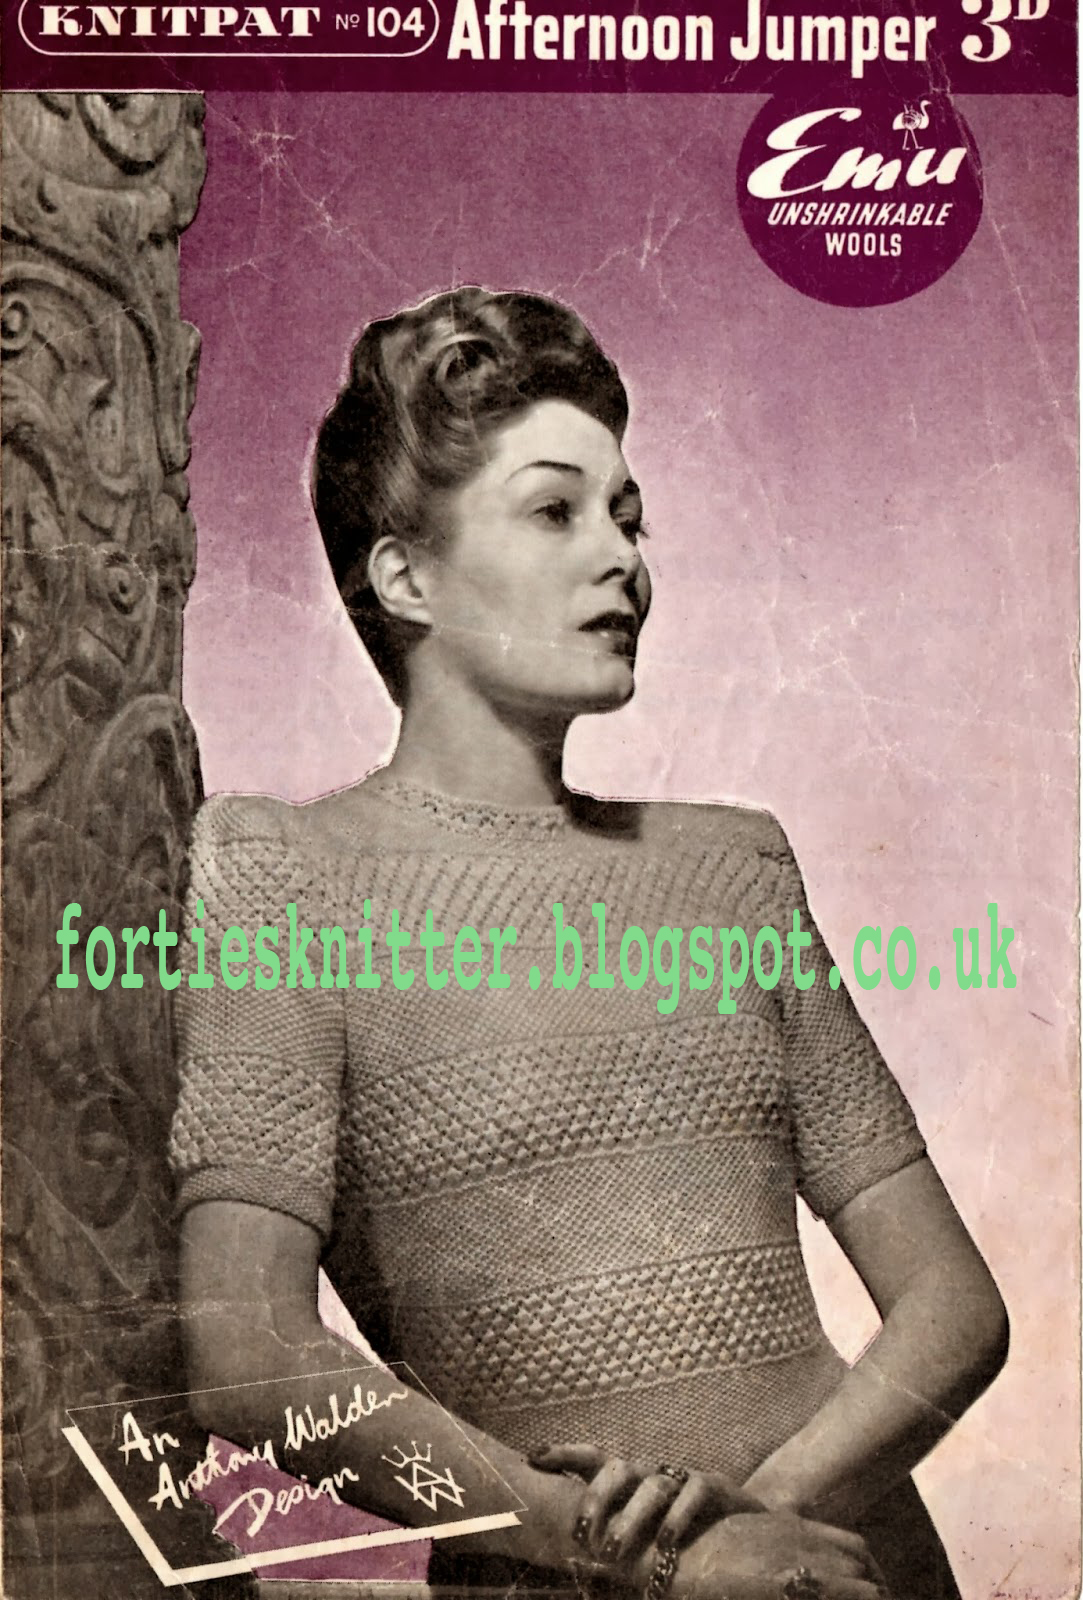 1940's Knitting - Knitpat 104 Women's Jumper free pattern